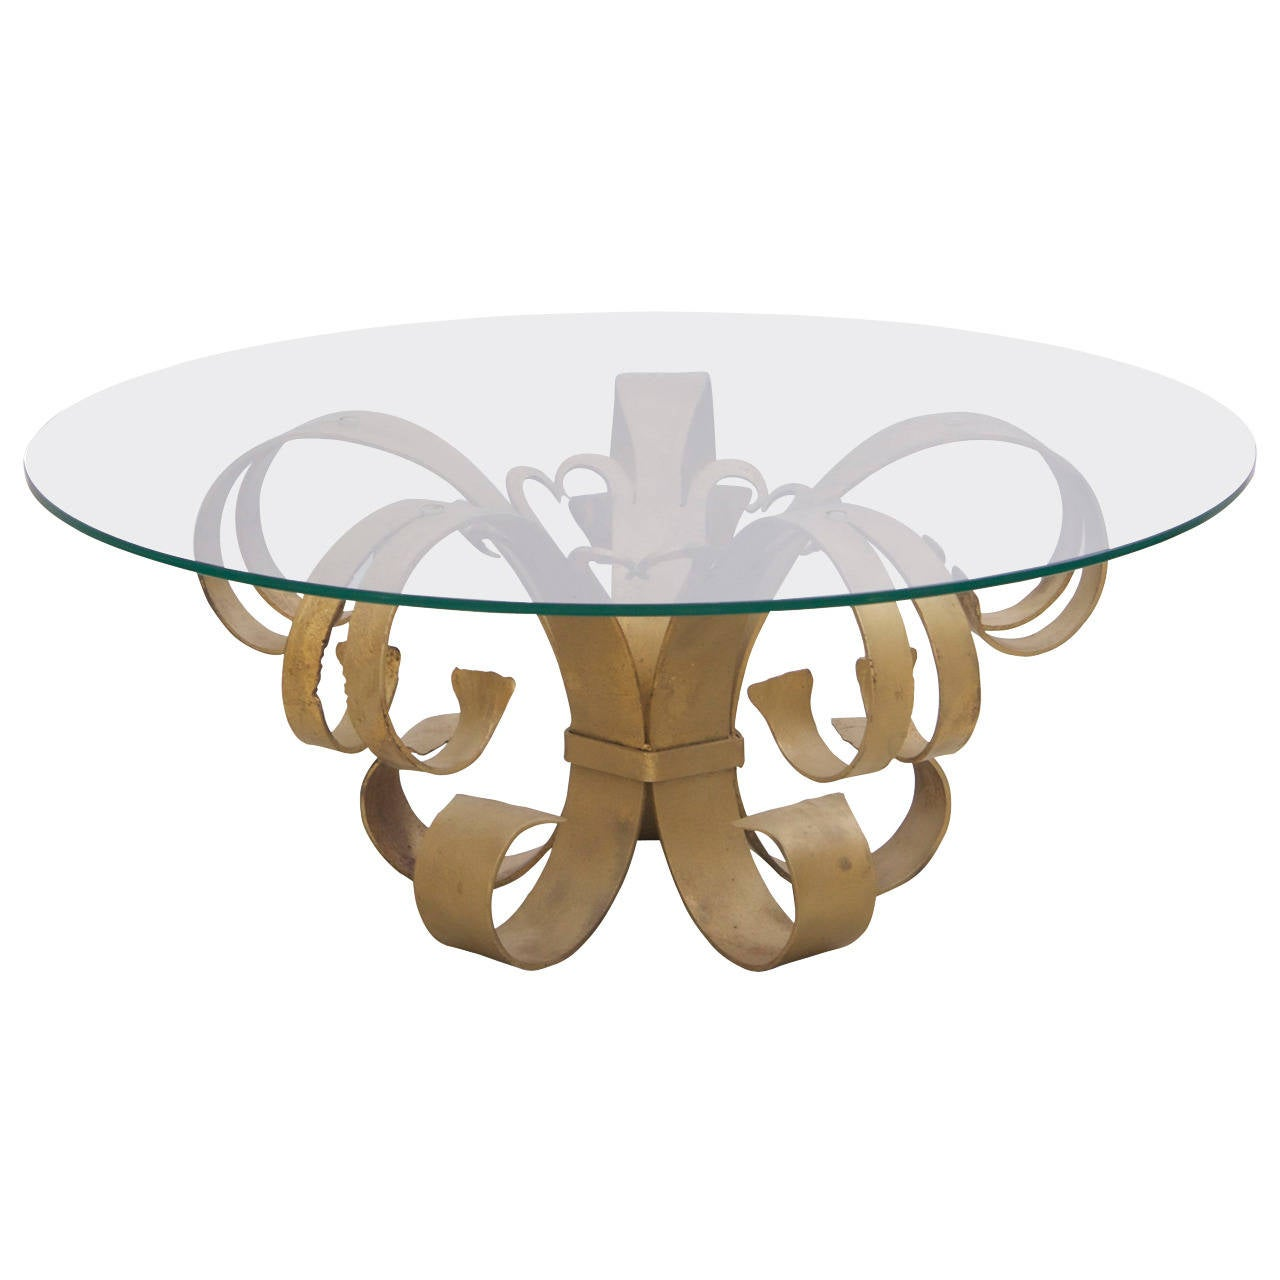 Glass Top Coffee Table With Iron Base: Huge Hollywood Regency Wrought Iron Italian Coffee Table